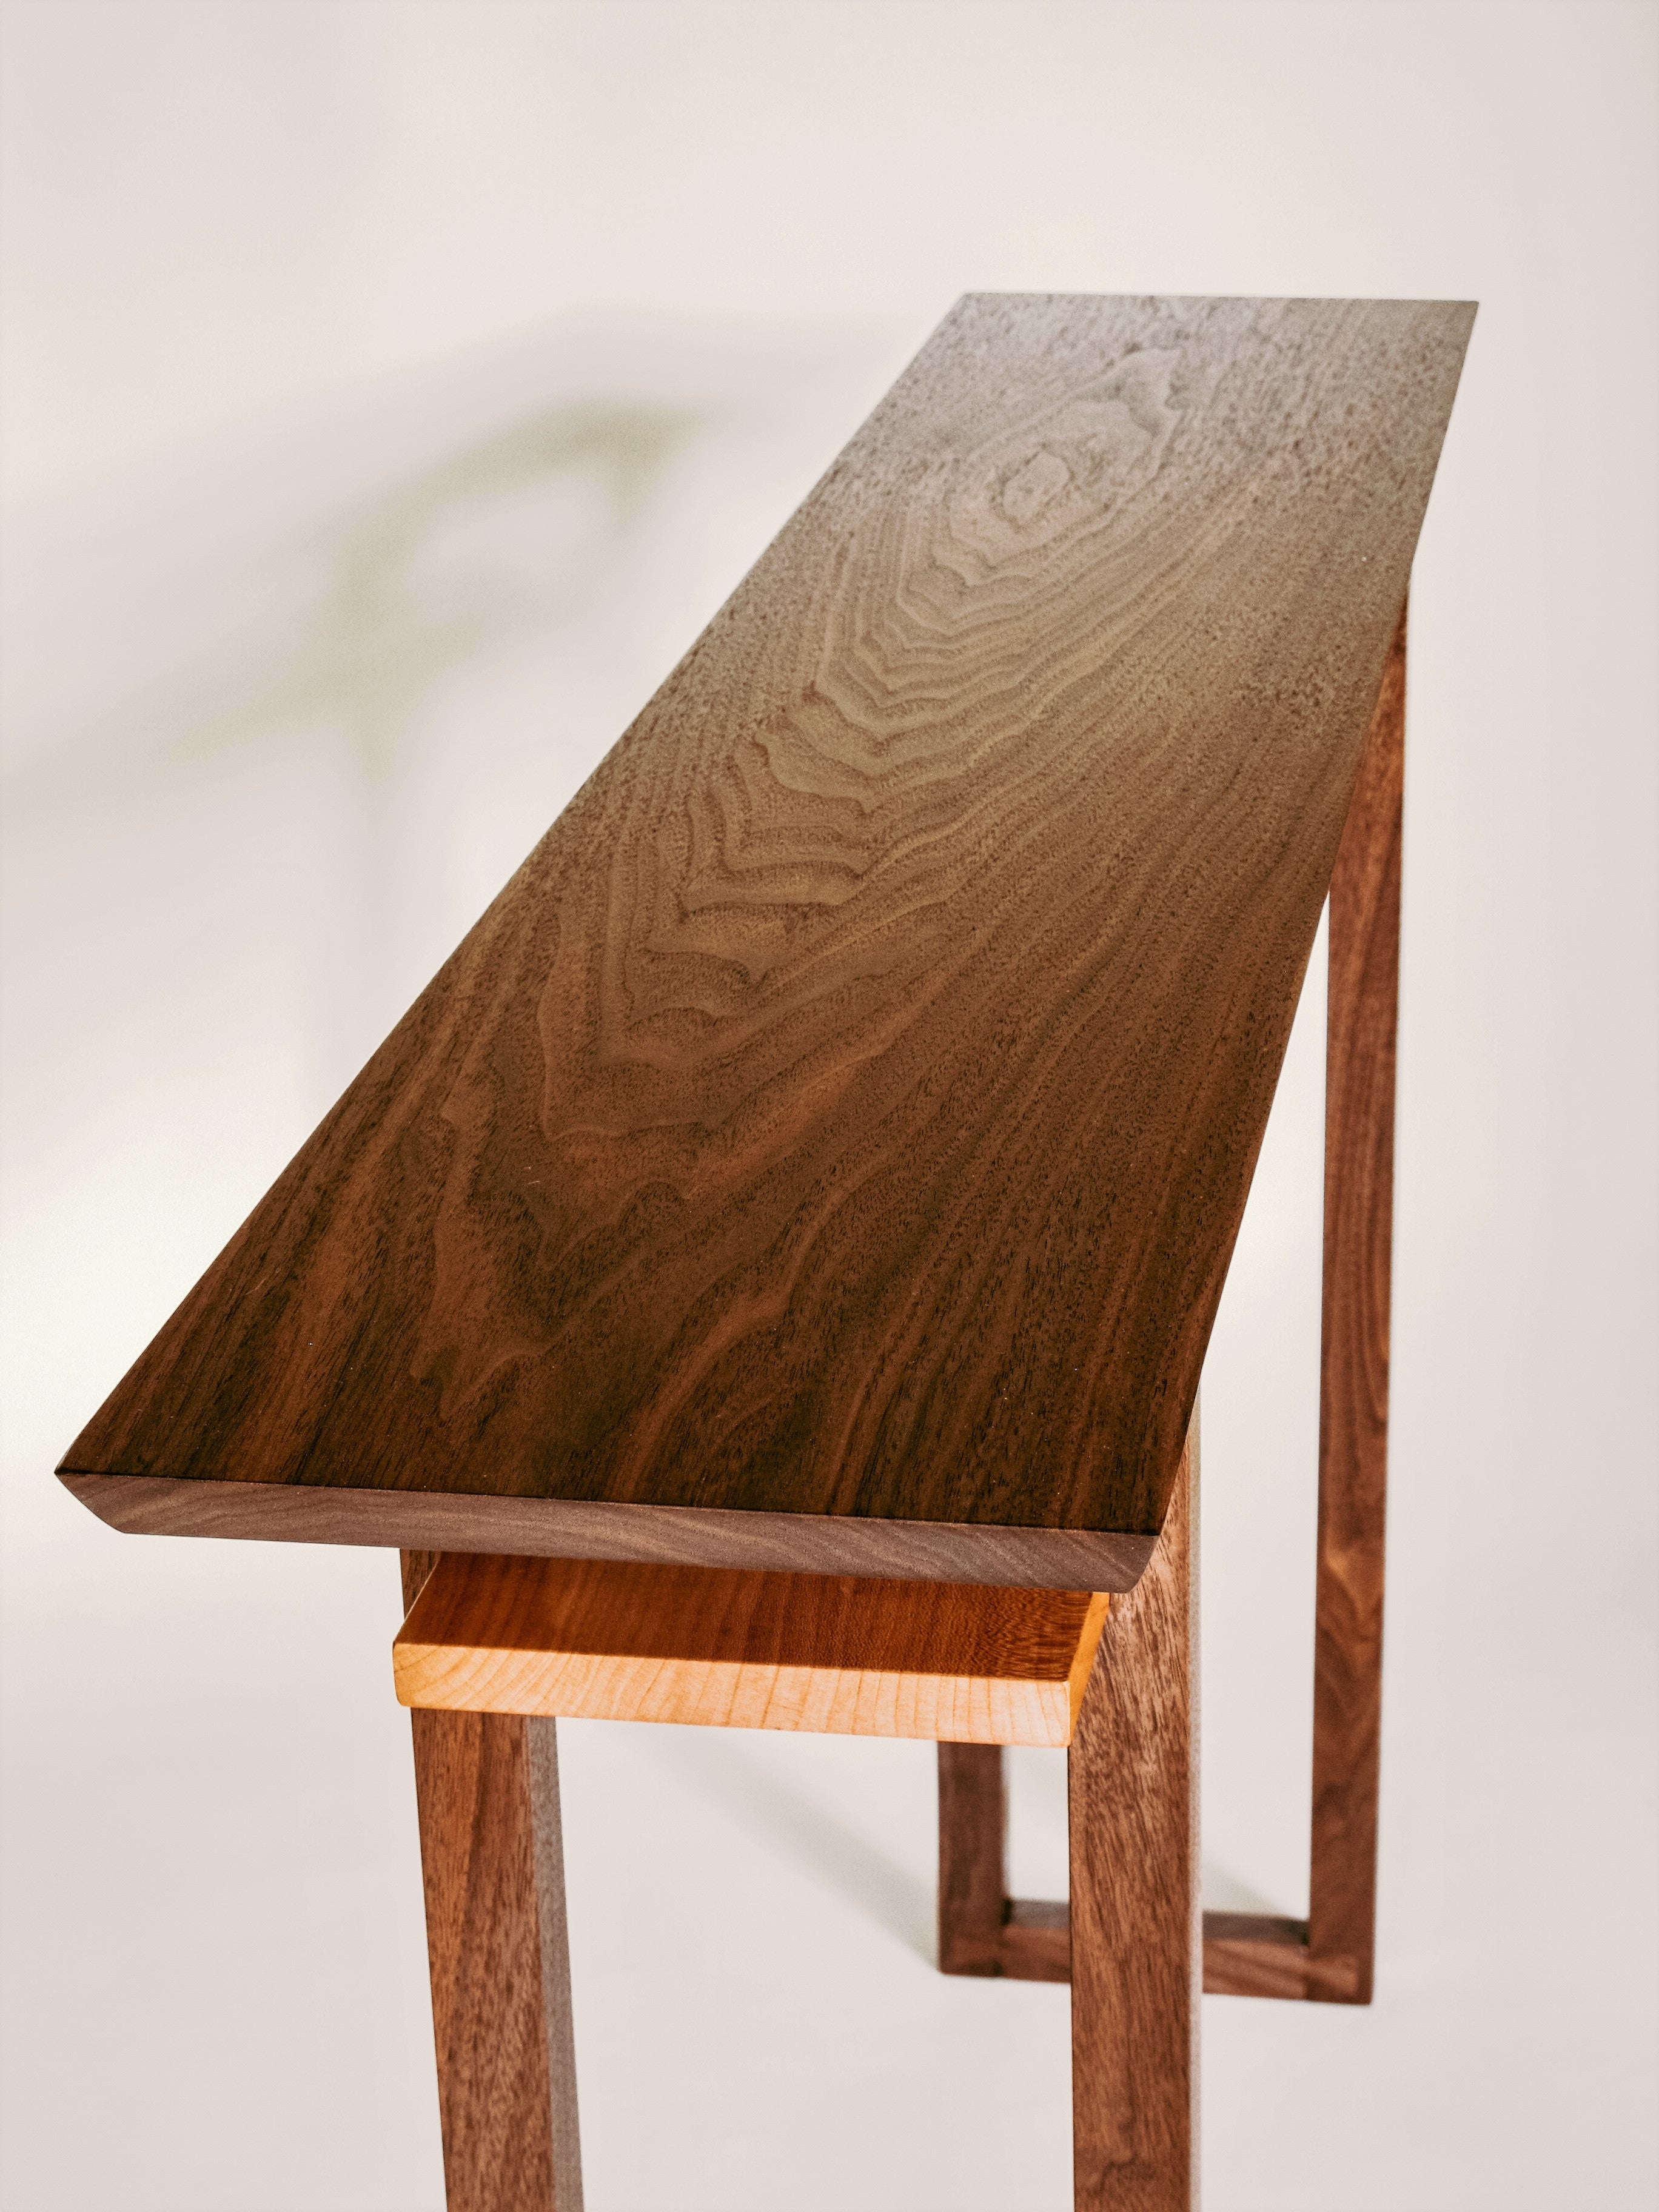 Premium solid woods of walnut and cherry create this narrow console table